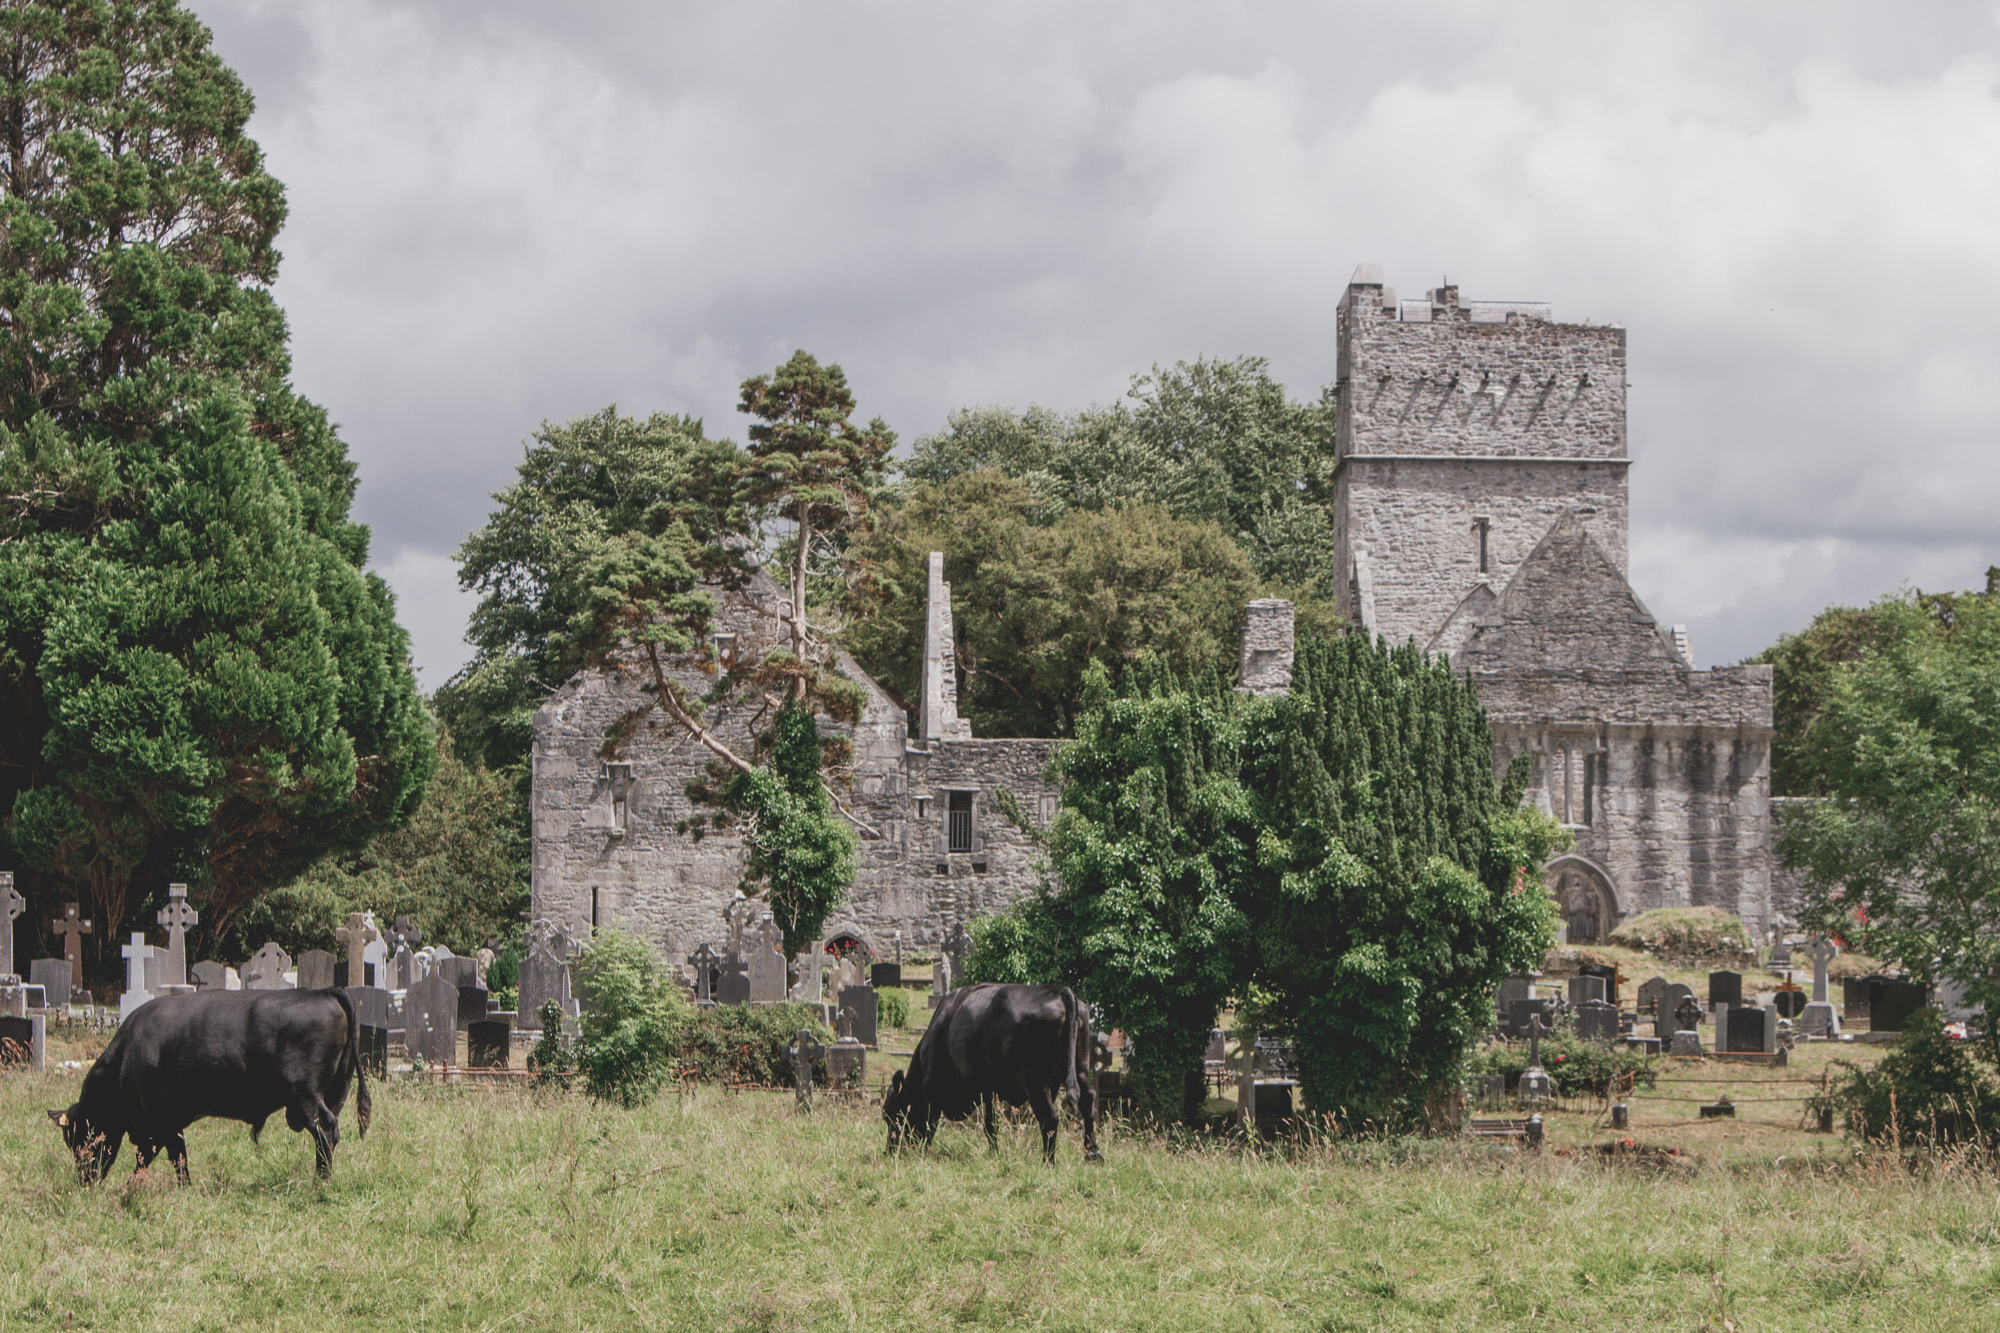 Muckross Abbey ruins in Killarney National Park in Ireland with cows in the field and gravestones